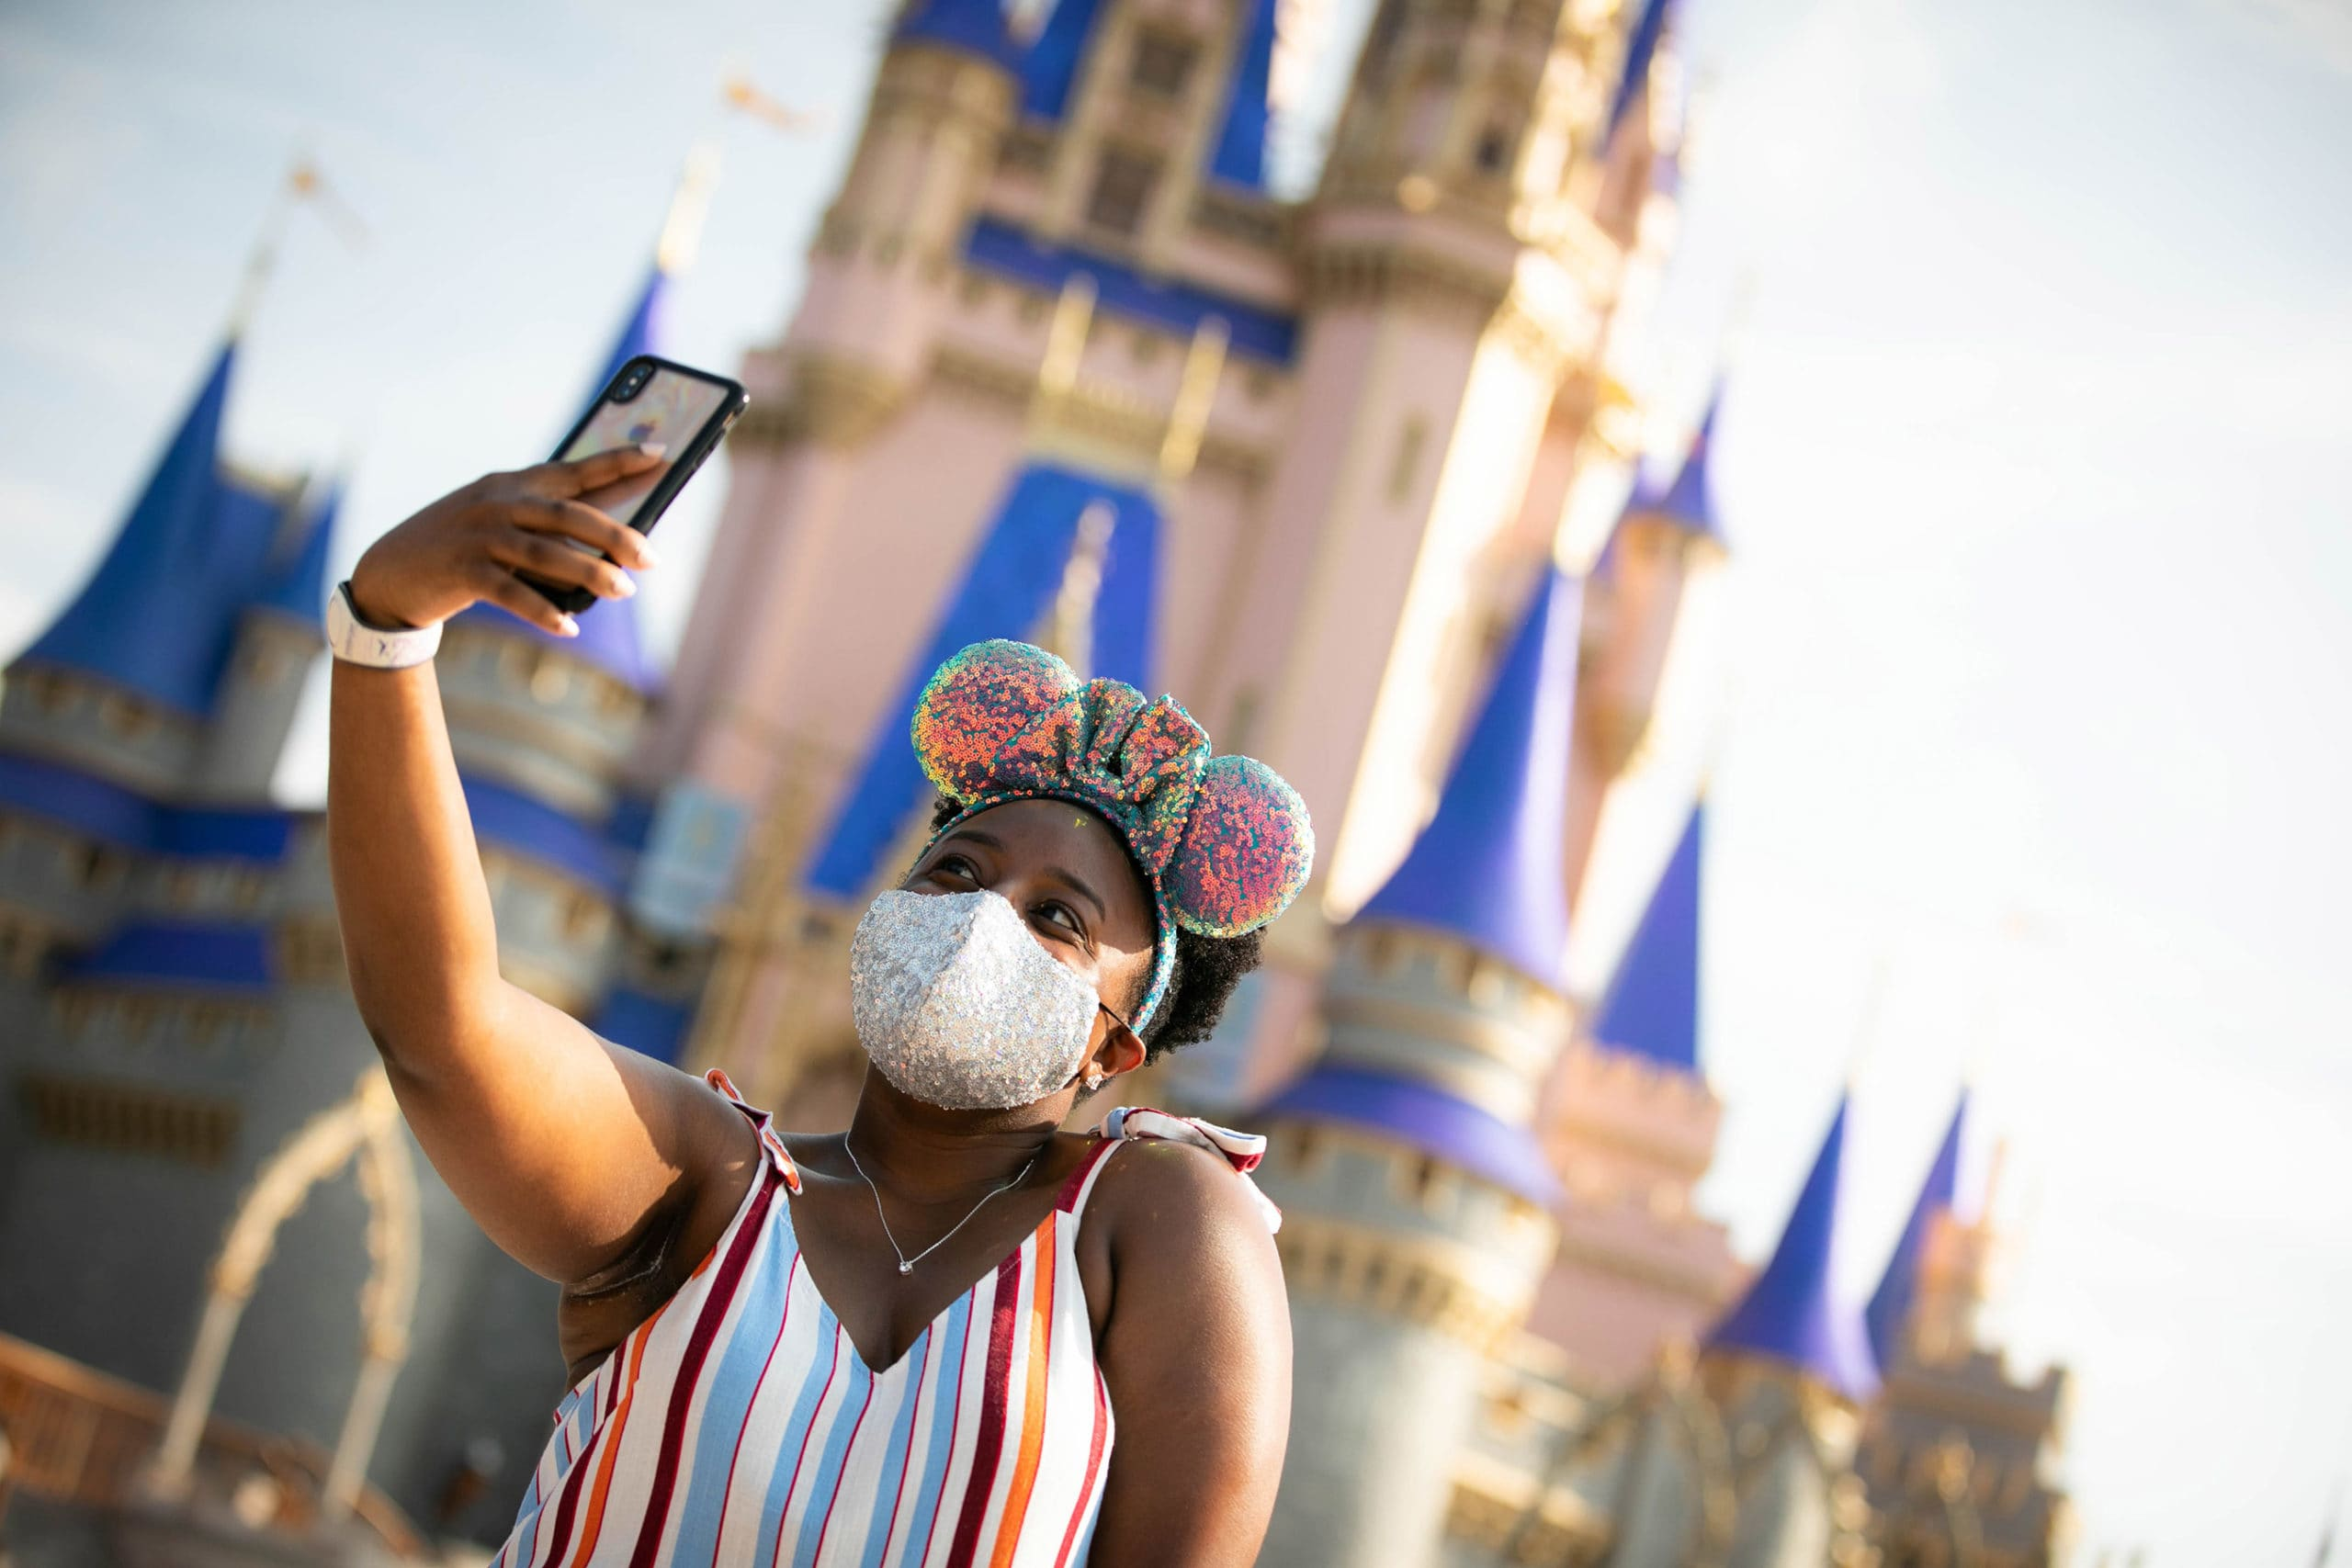 Disney's domestic theme parks will require all parkgoers to wear masks indoors starting Friday - CNBC